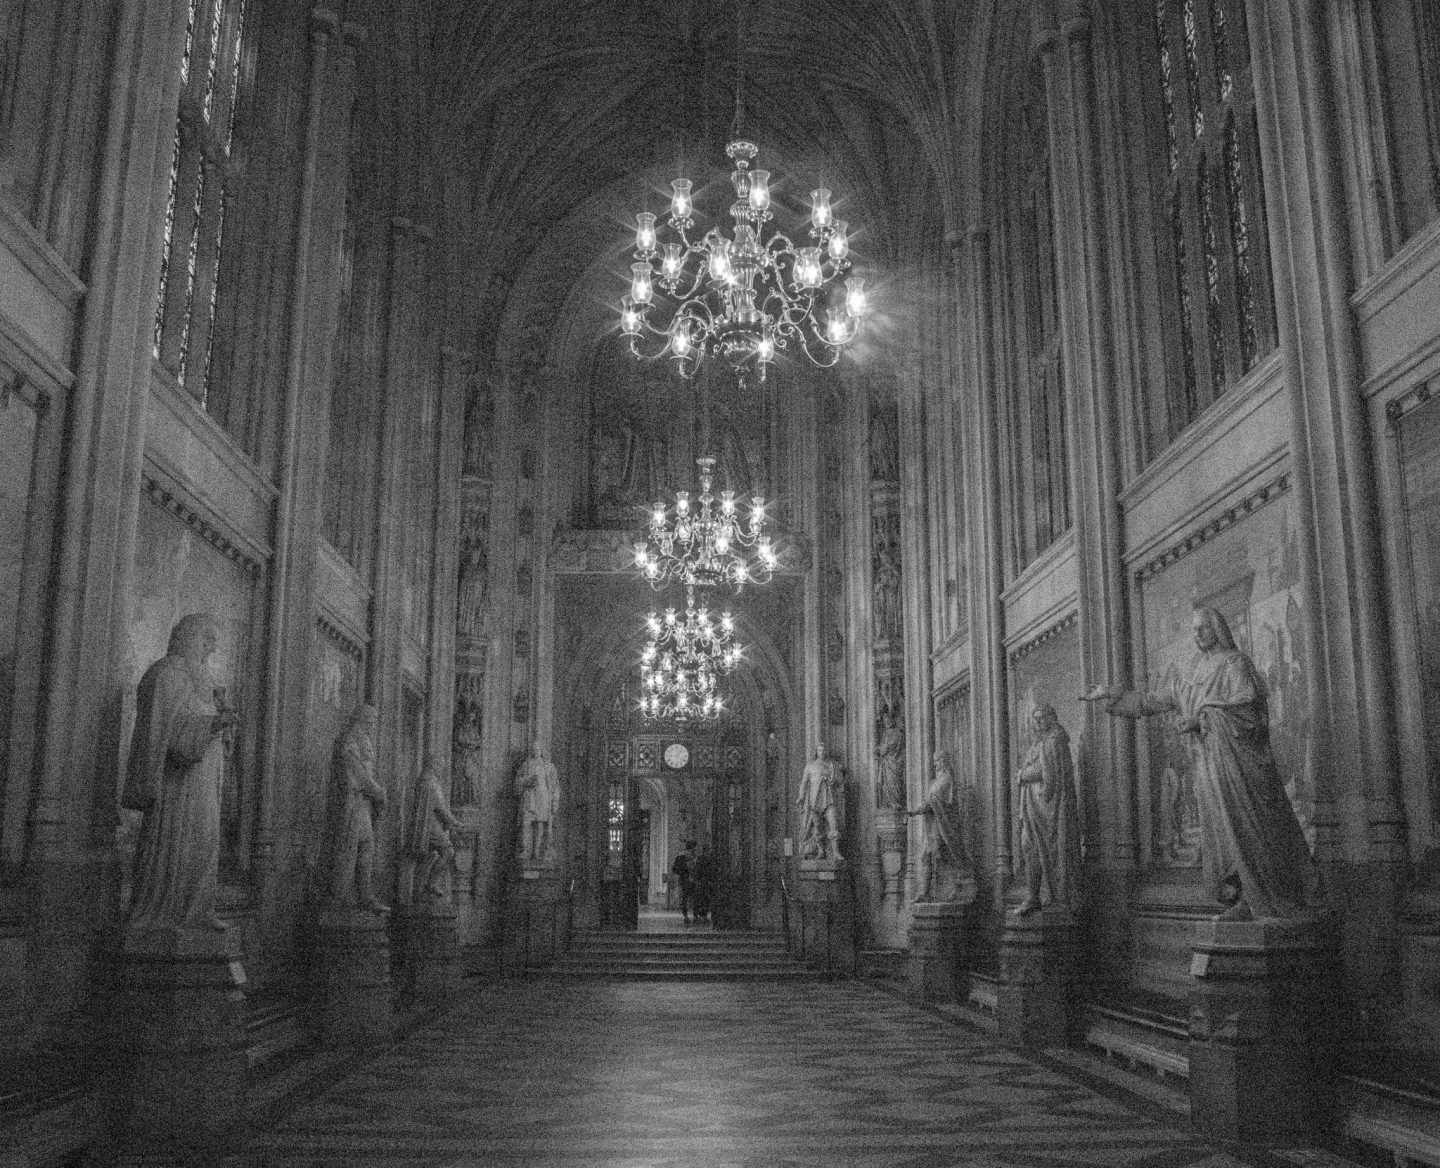 Palace of Westminster, House of Lords, House of Commons, Wesminster Hall, photography, dadbloguk, photographer, London